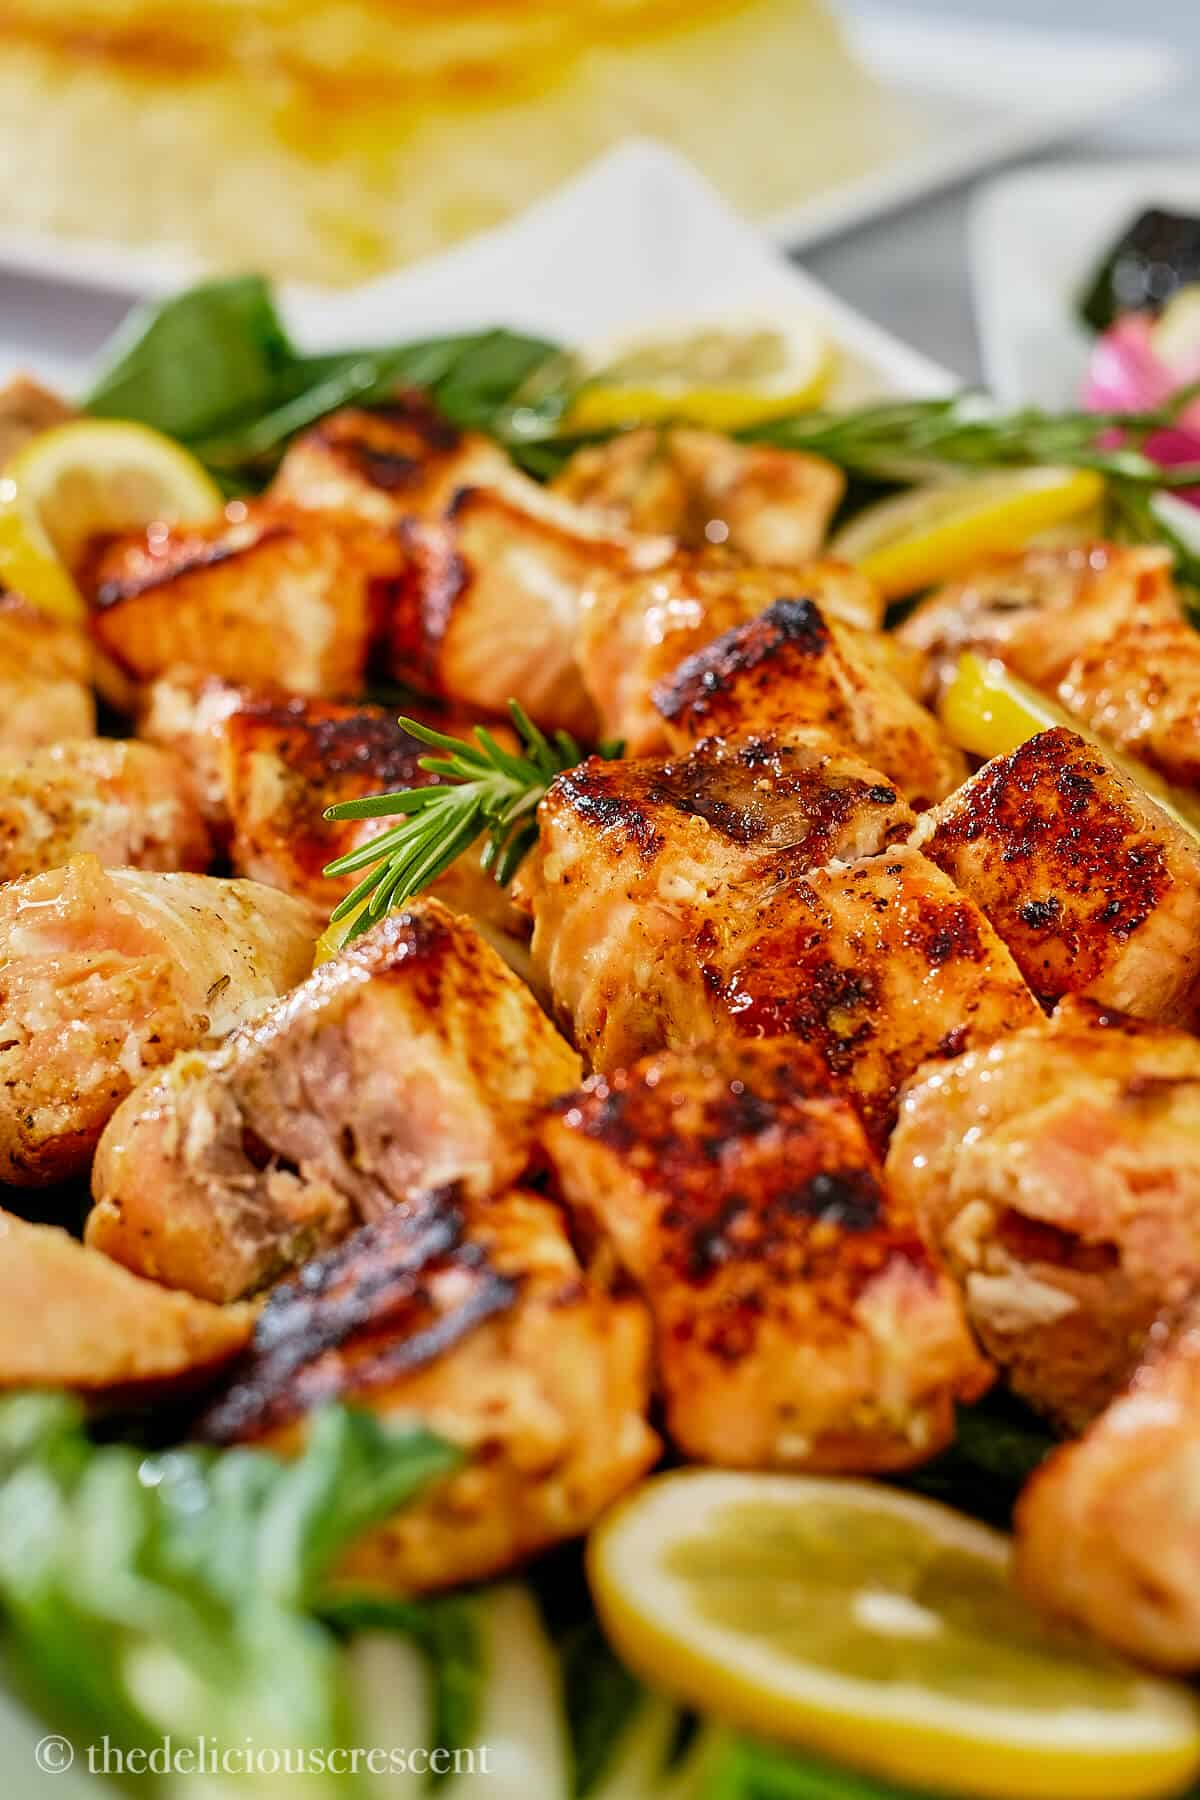 Salmon kebabs with lemon sliced placed on greens.